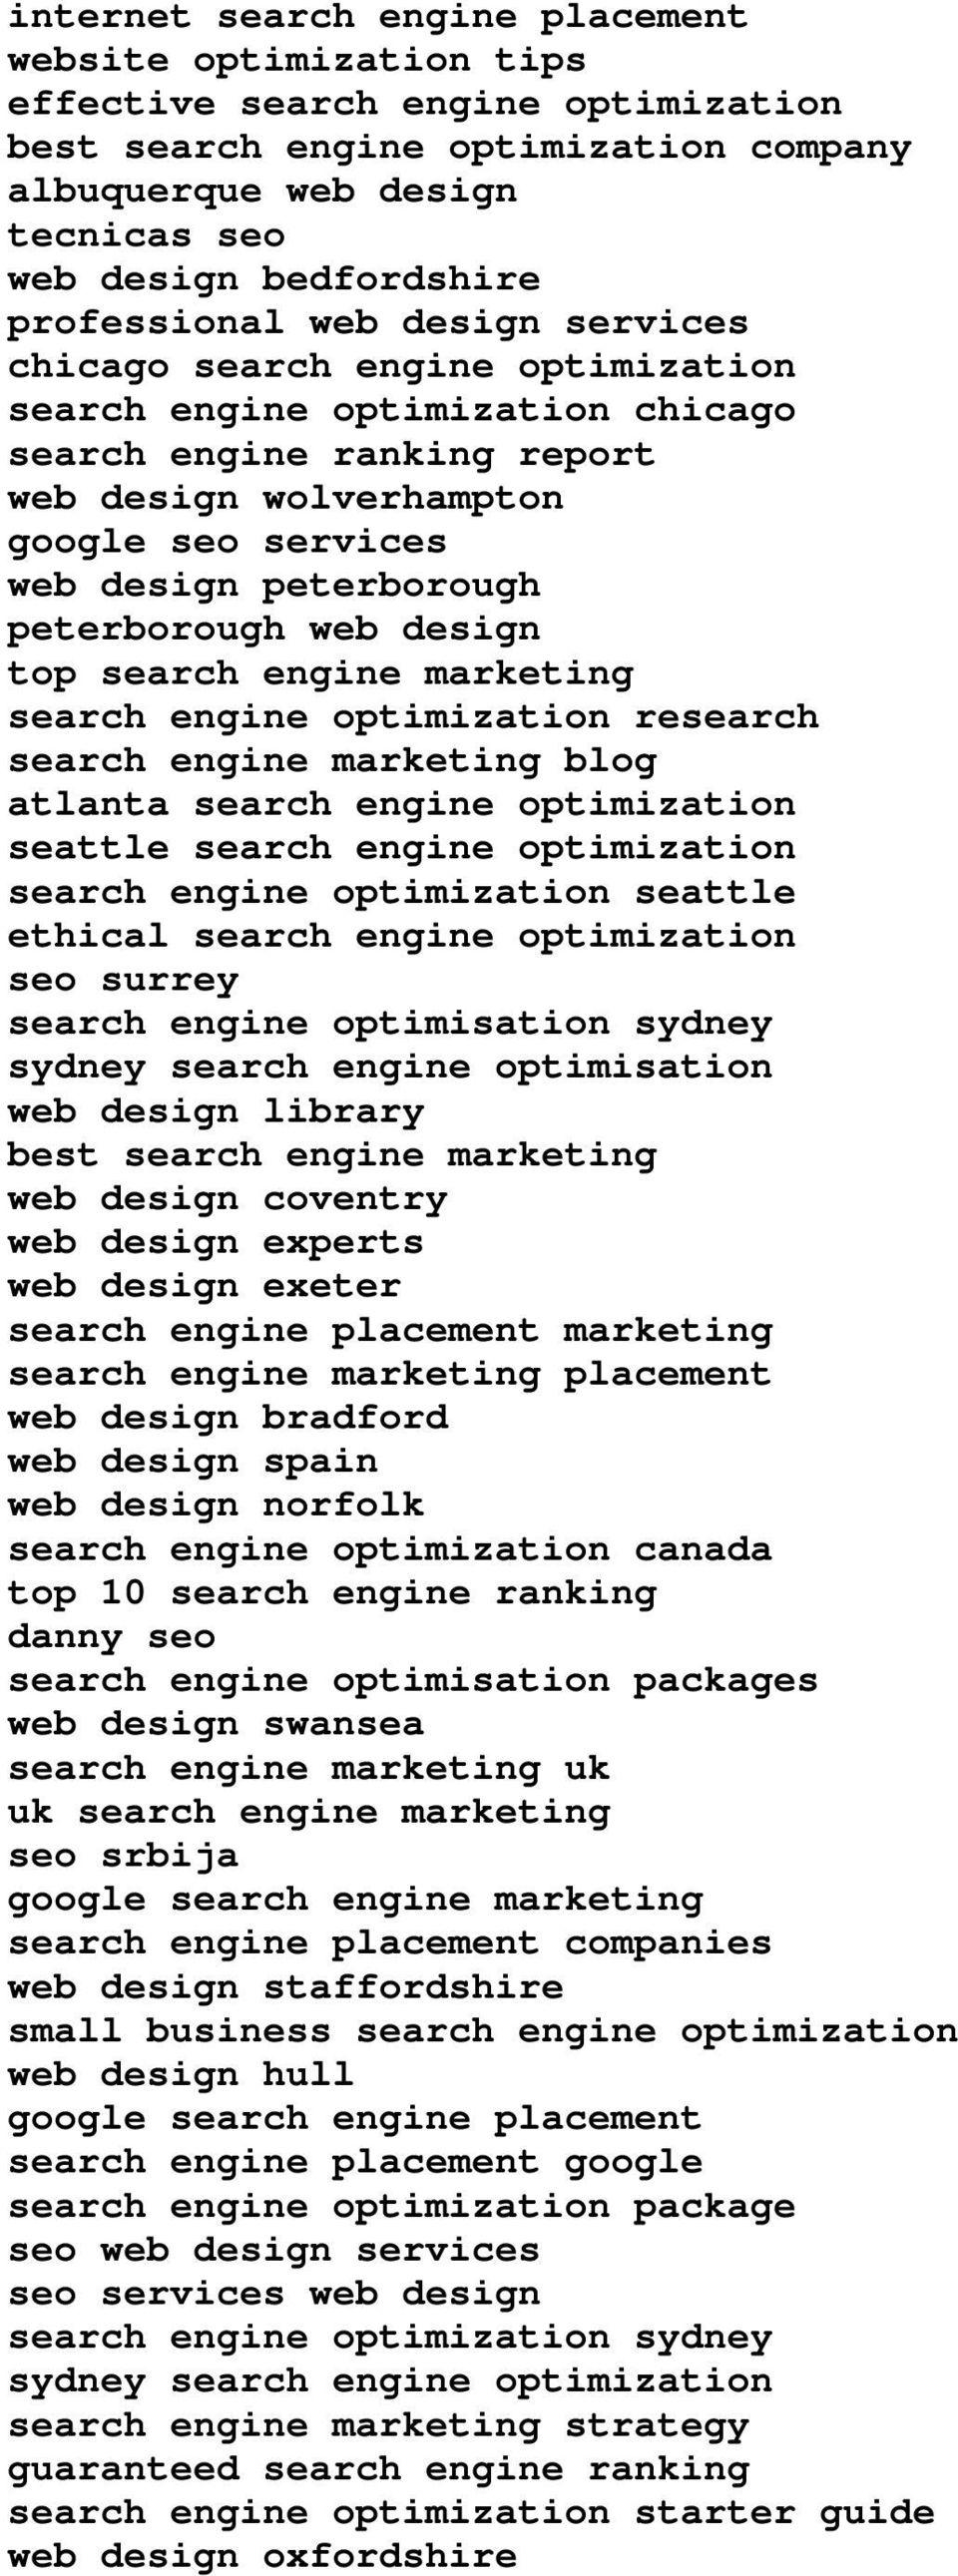 peterborough peterborough web design top search engine marketing search engine optimization research search engine marketing blog atlanta search engine optimization seattle search engine optimization